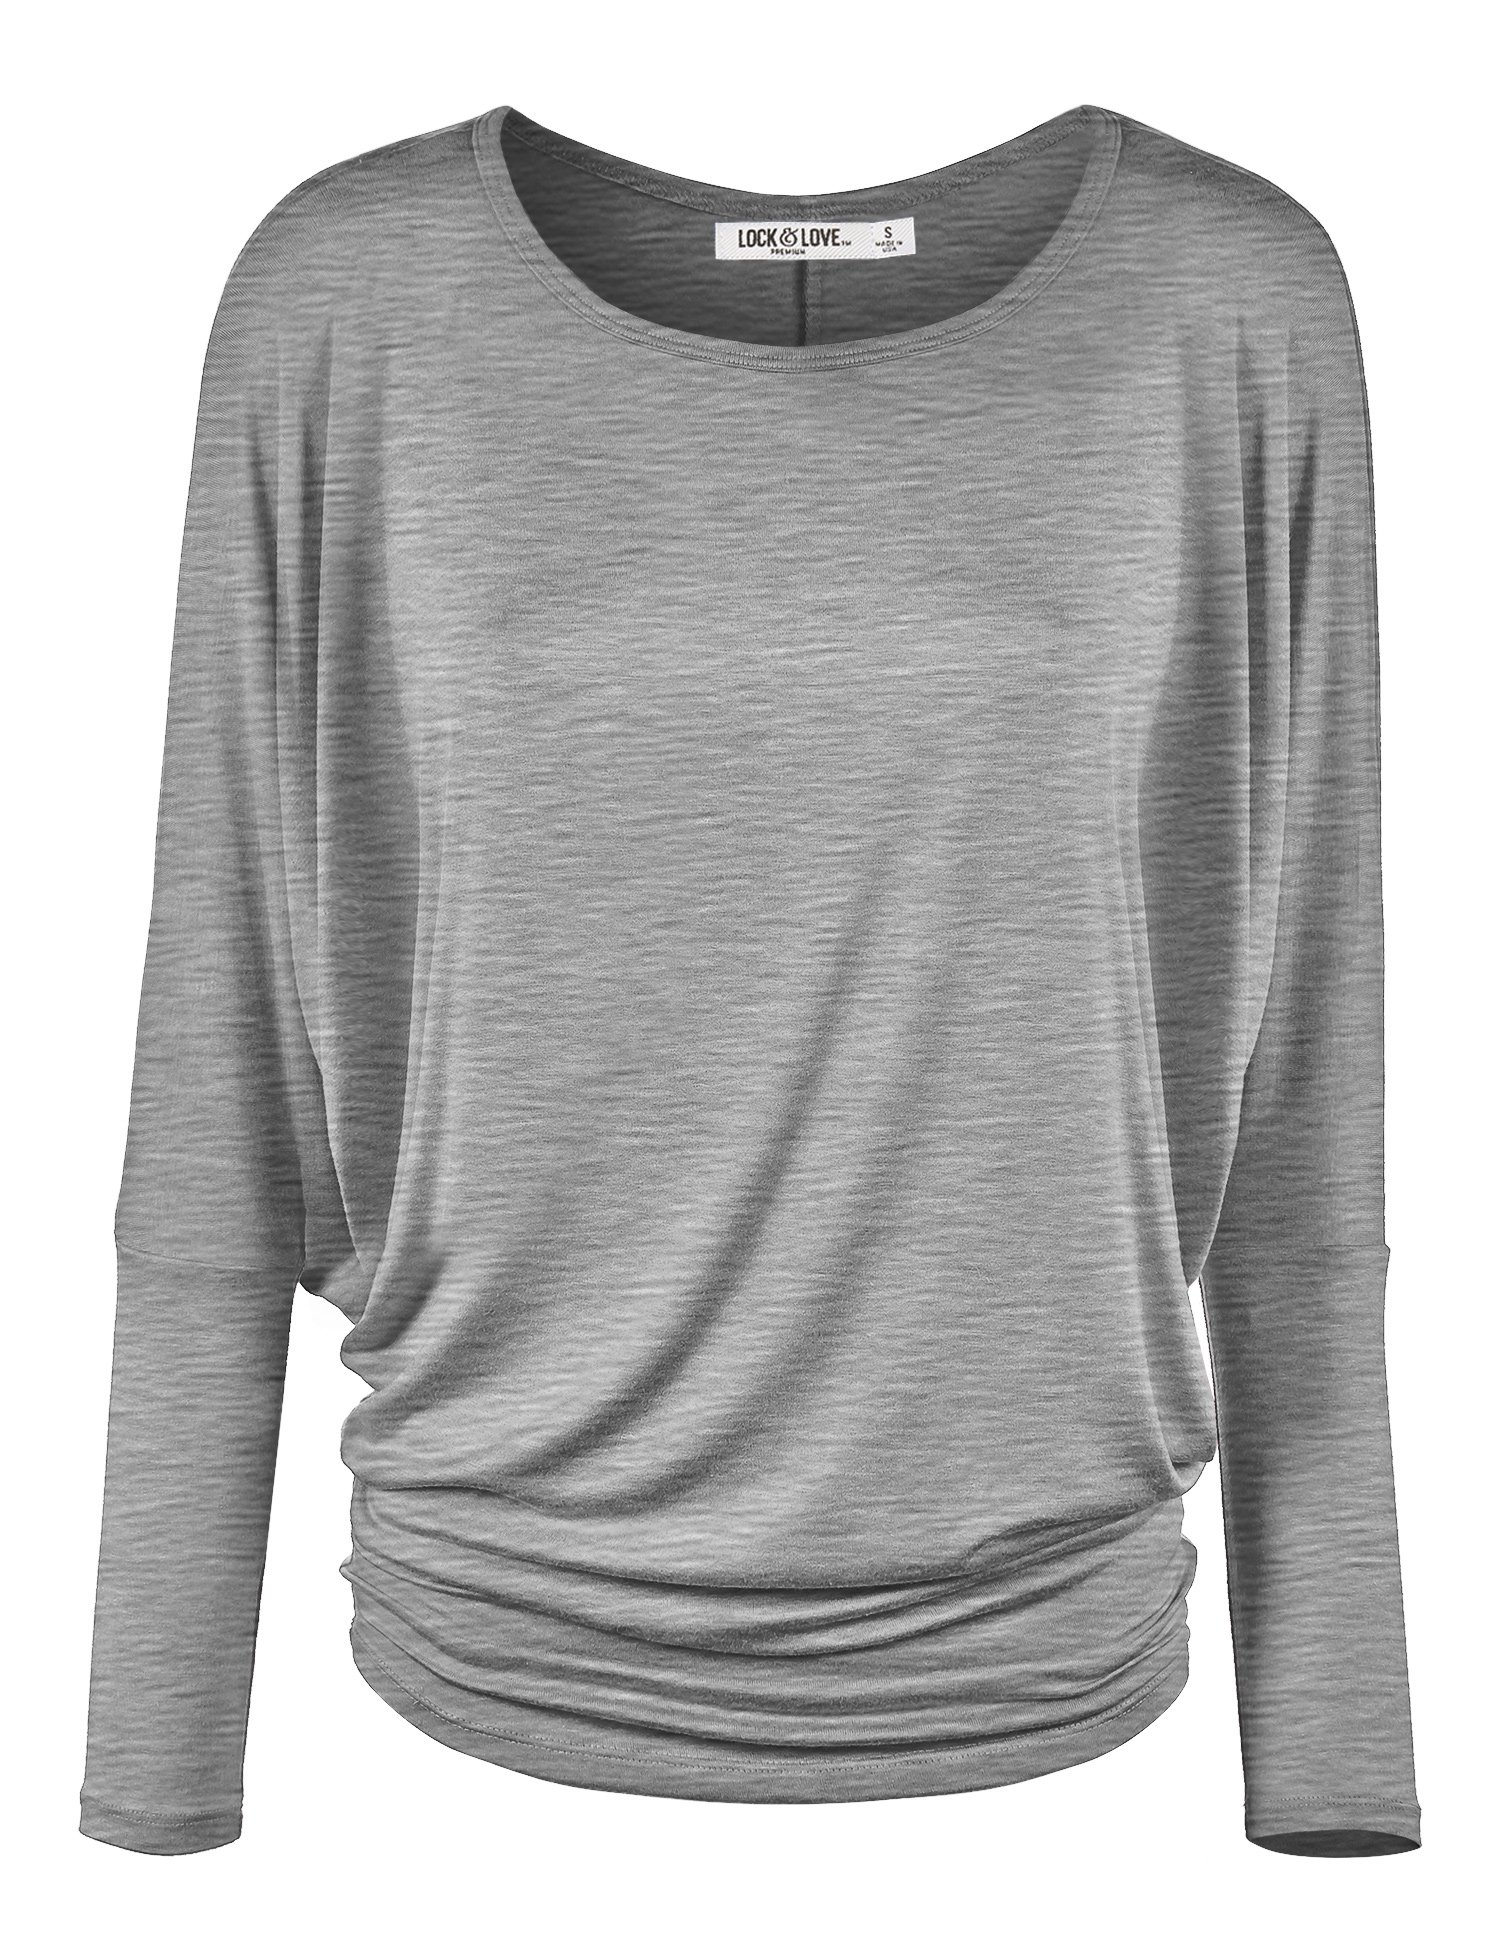 Lock and Love WT826 Womens Batwing Long Sleeve Top L Heather_Grey